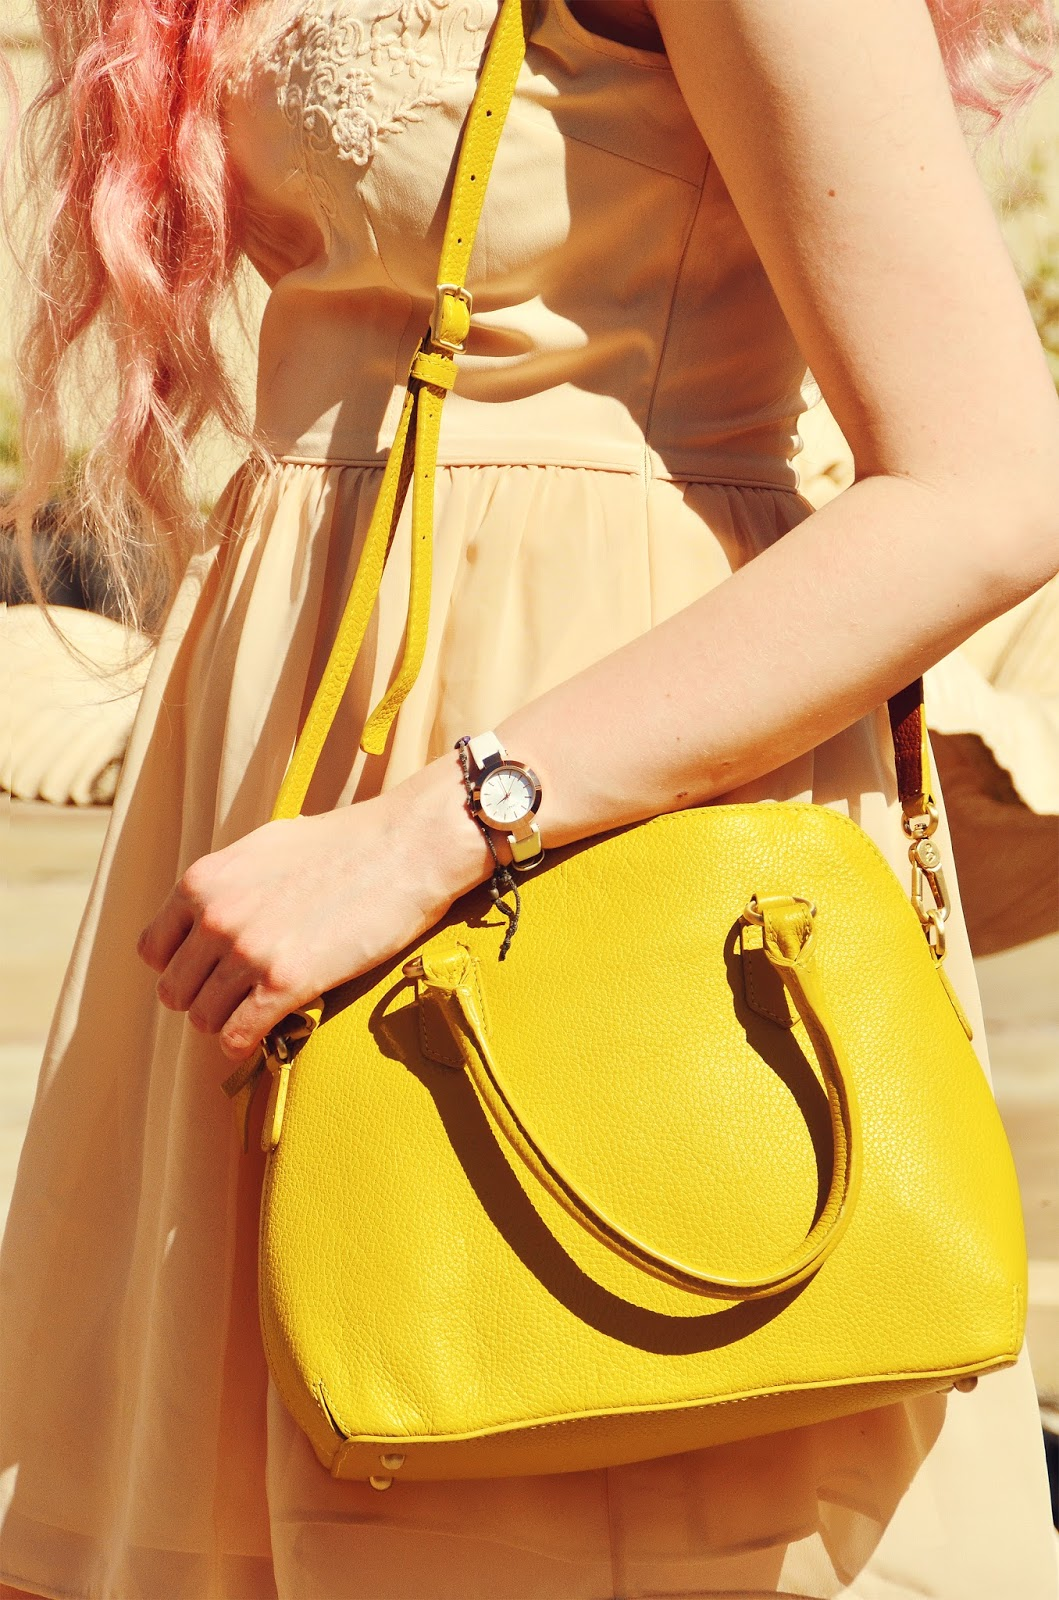 Stephi LaReine // Peach Floral Collar Summer Dress // Oasis (old) Sulphur Yellow Leather Bag * // Boden Clothing DKNY Watch * // House Of Watches